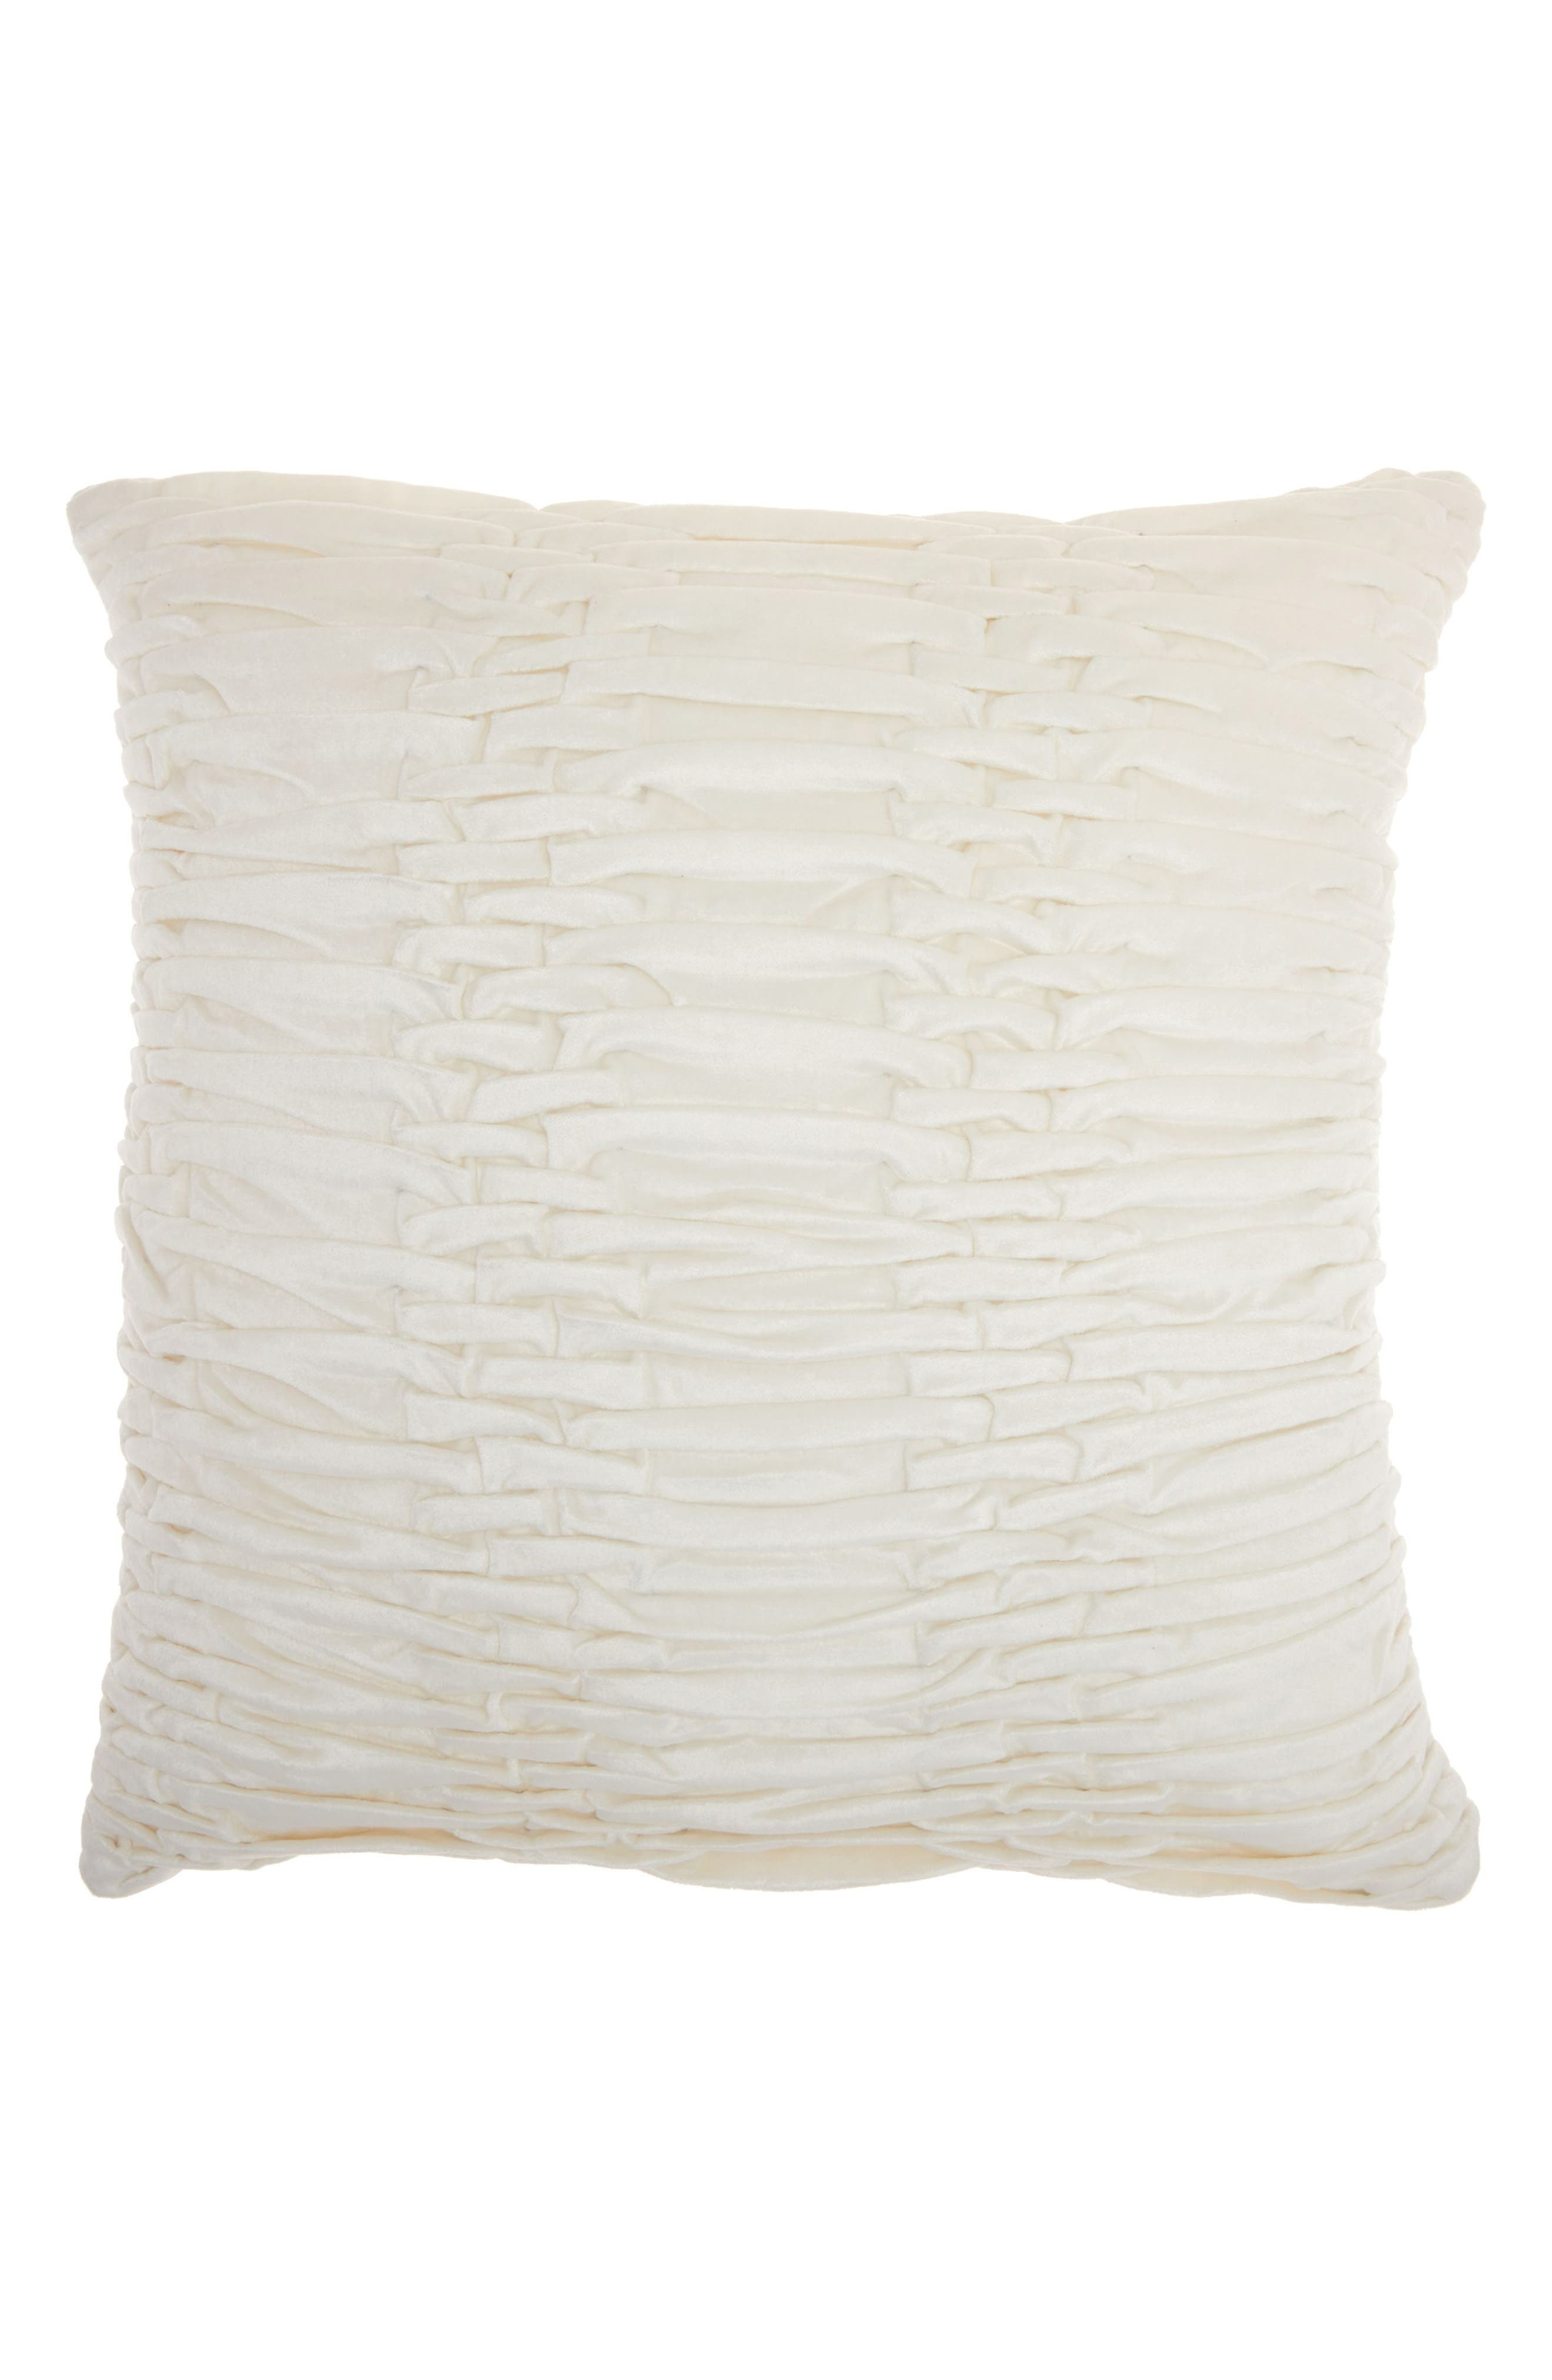 Main Image - Mina Victory Pleated Velvet Accent Pillow